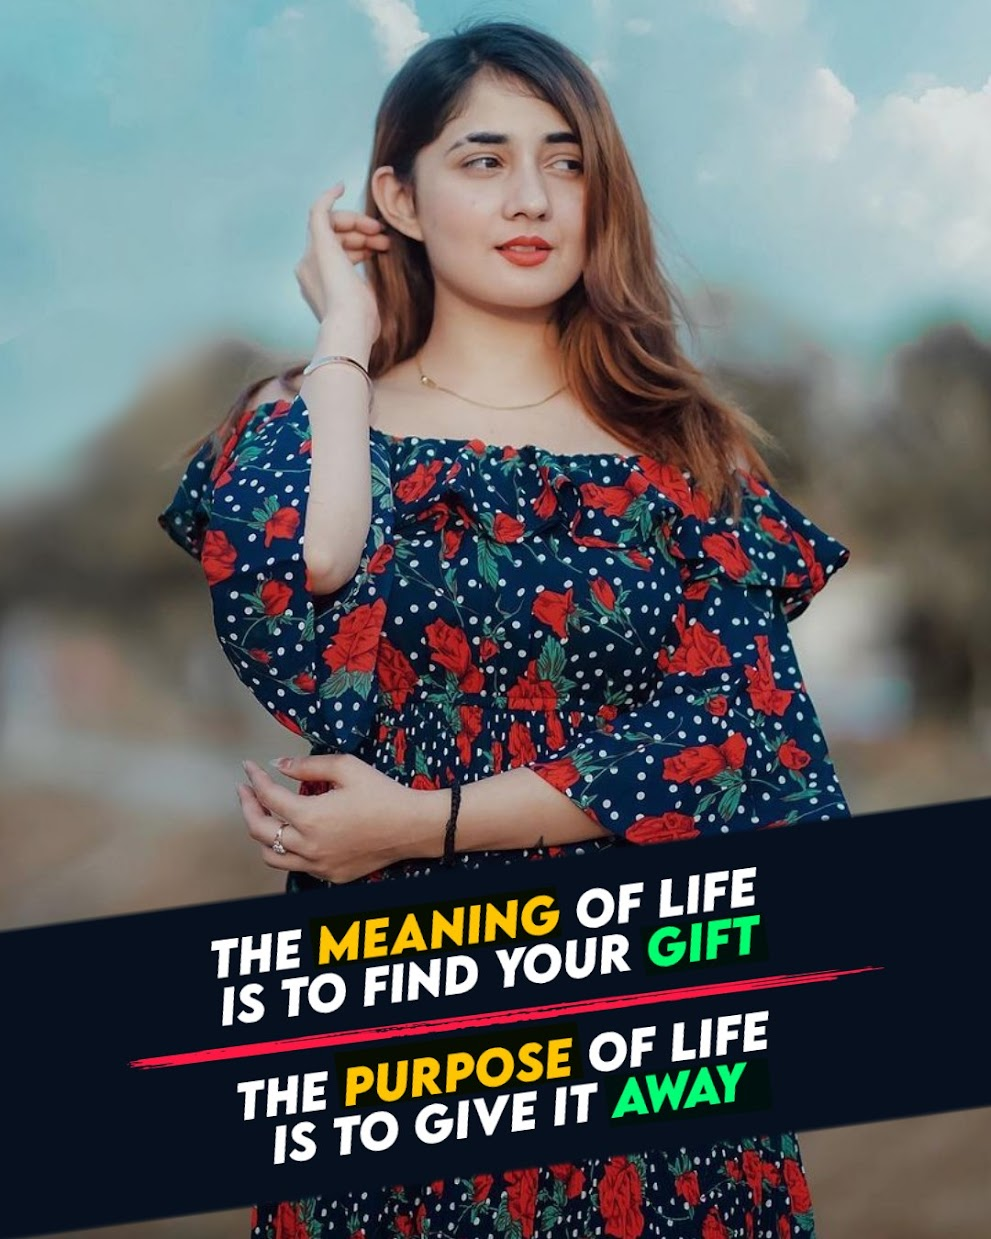 The Meaning of Life - Motivational Quotes for Life